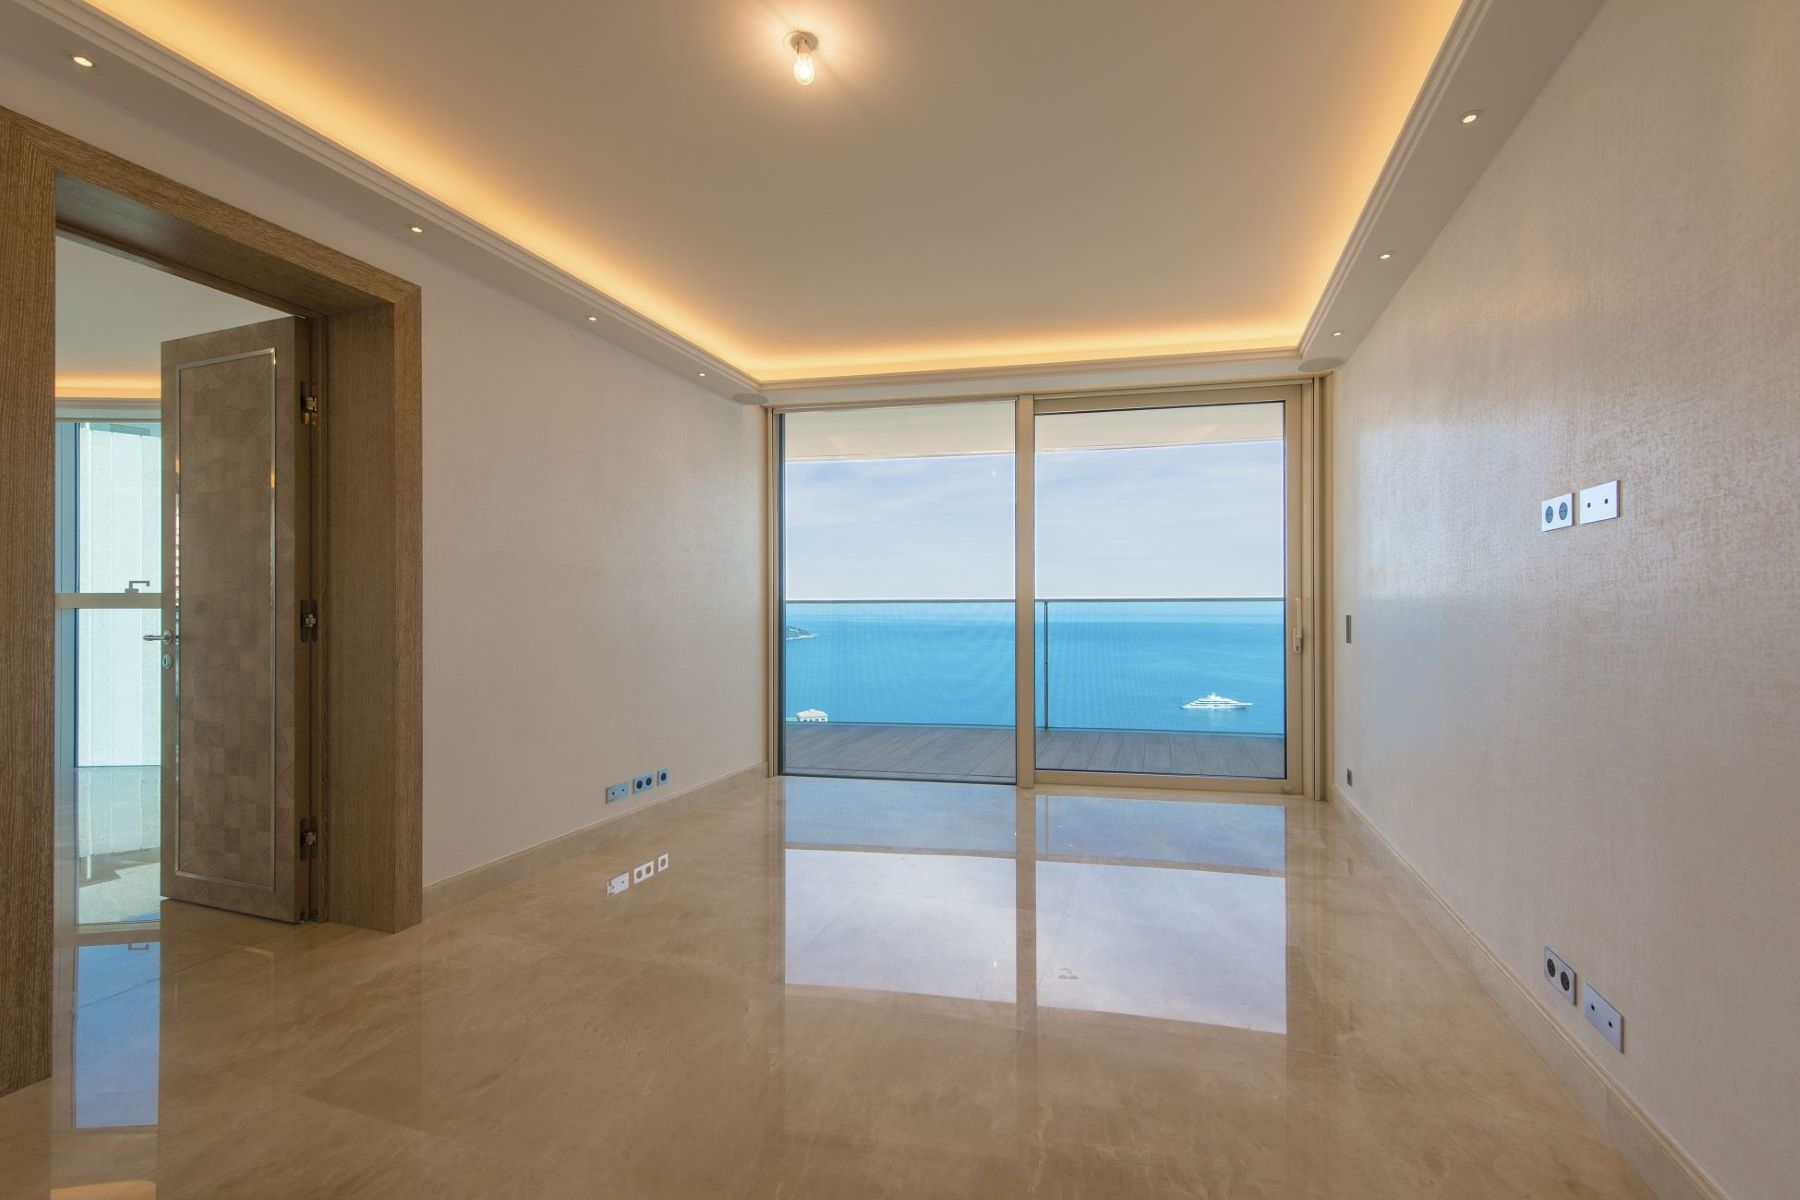 Квартира для того Продажа на Odeon Tower - Superb brand new apartment Tour Odéon 36 Avenue de l'Annonciade, Monaco, La Condamine, 98000 Монако